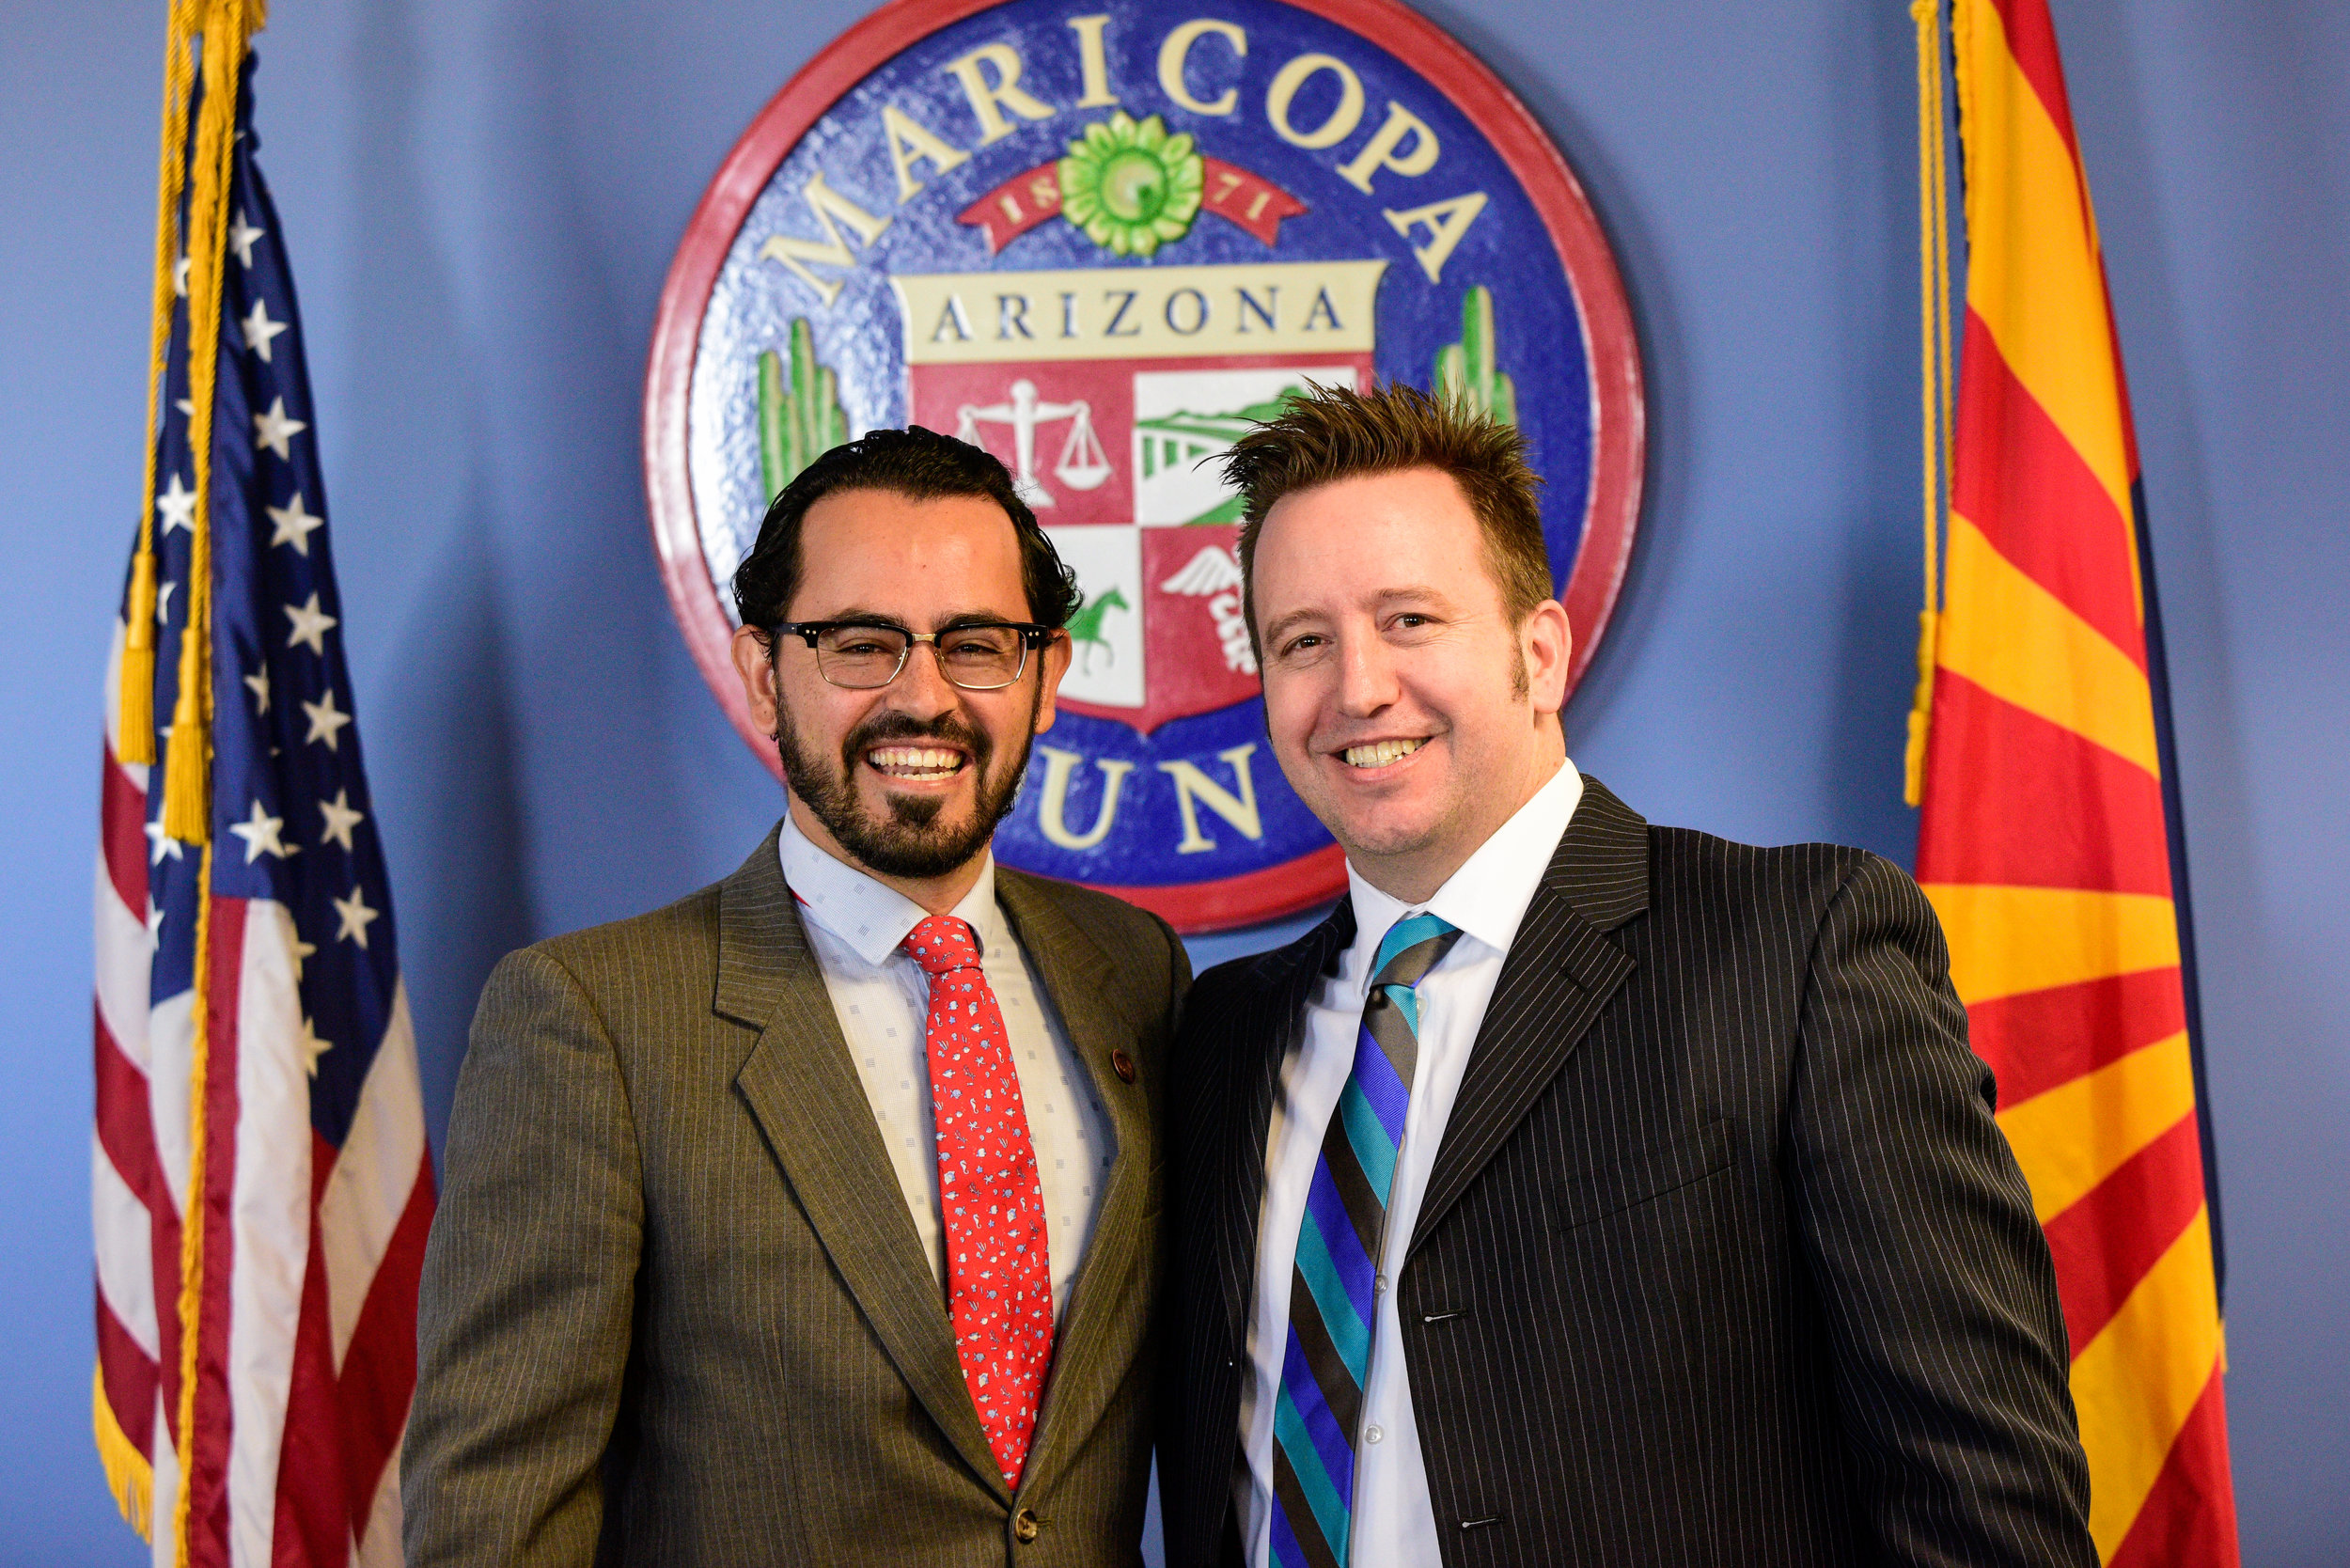 Augustine Bartning, Maricopa County Community College District